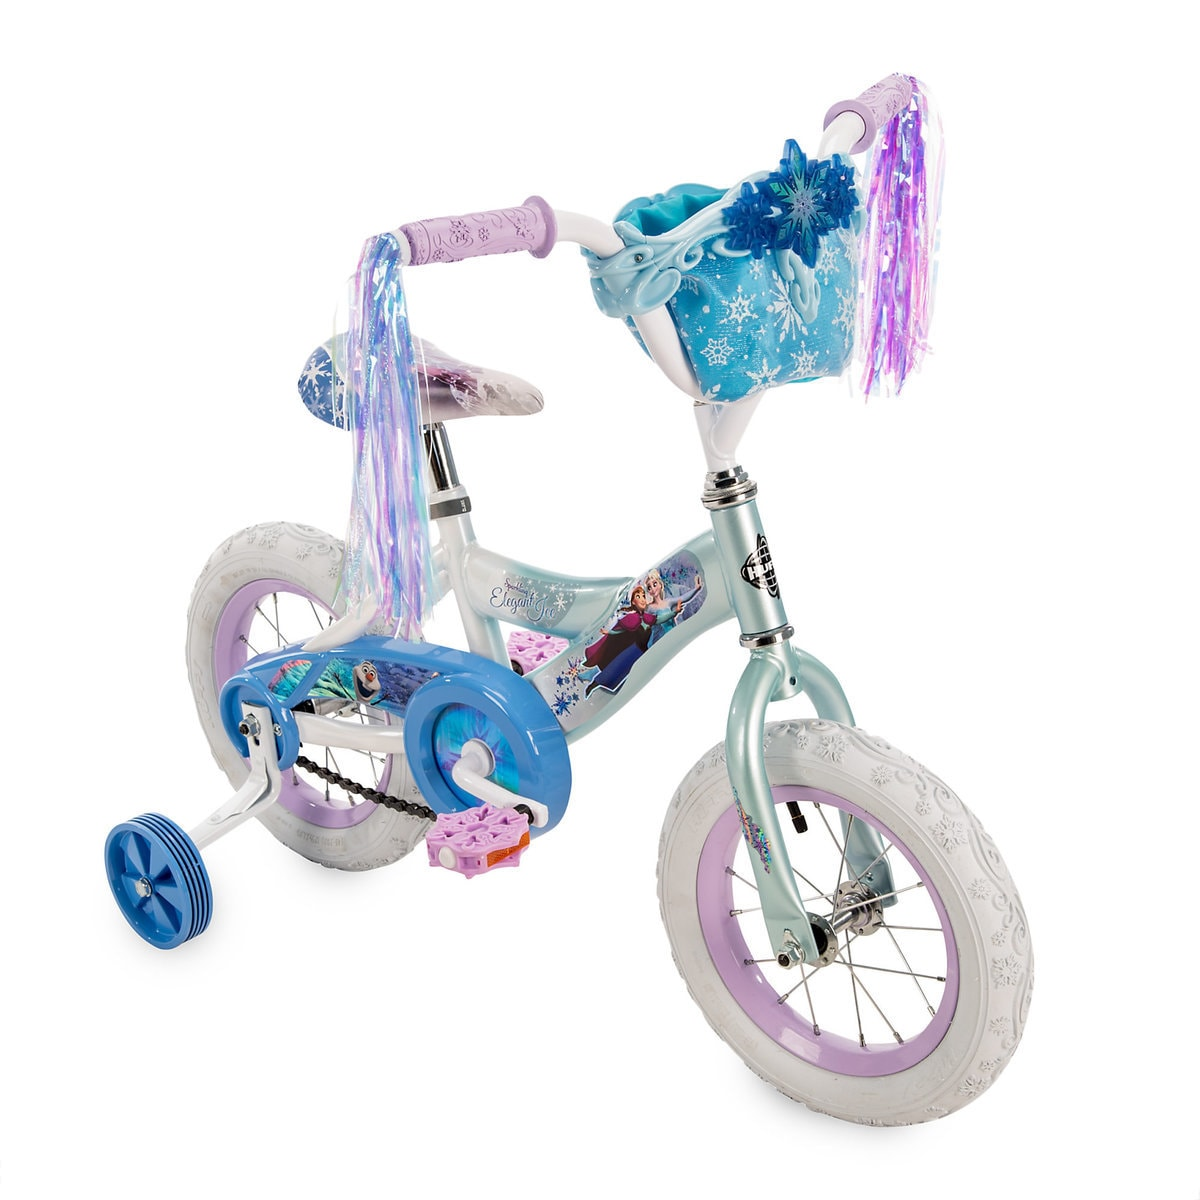 af8a960ef6a Product Image of Frozen Bike by Huffy - Small # 1